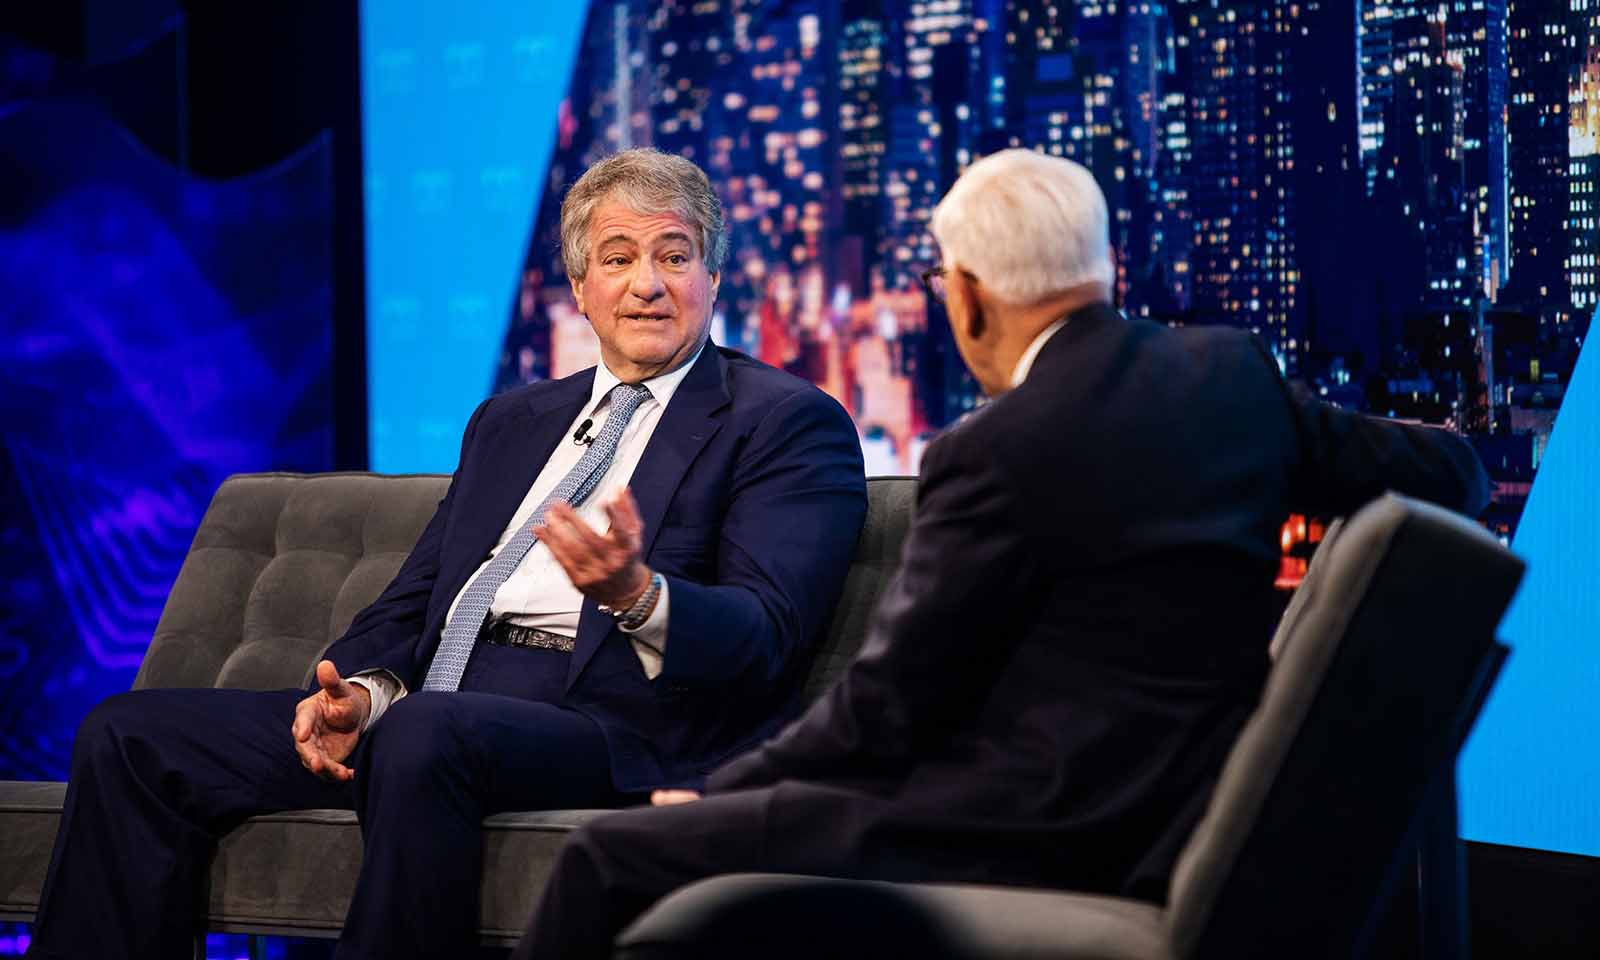 Leon Black is just one of numerous elite businessmen under the microscope for ties to Jeffrey Epstein. He's finally owning up to his connection.